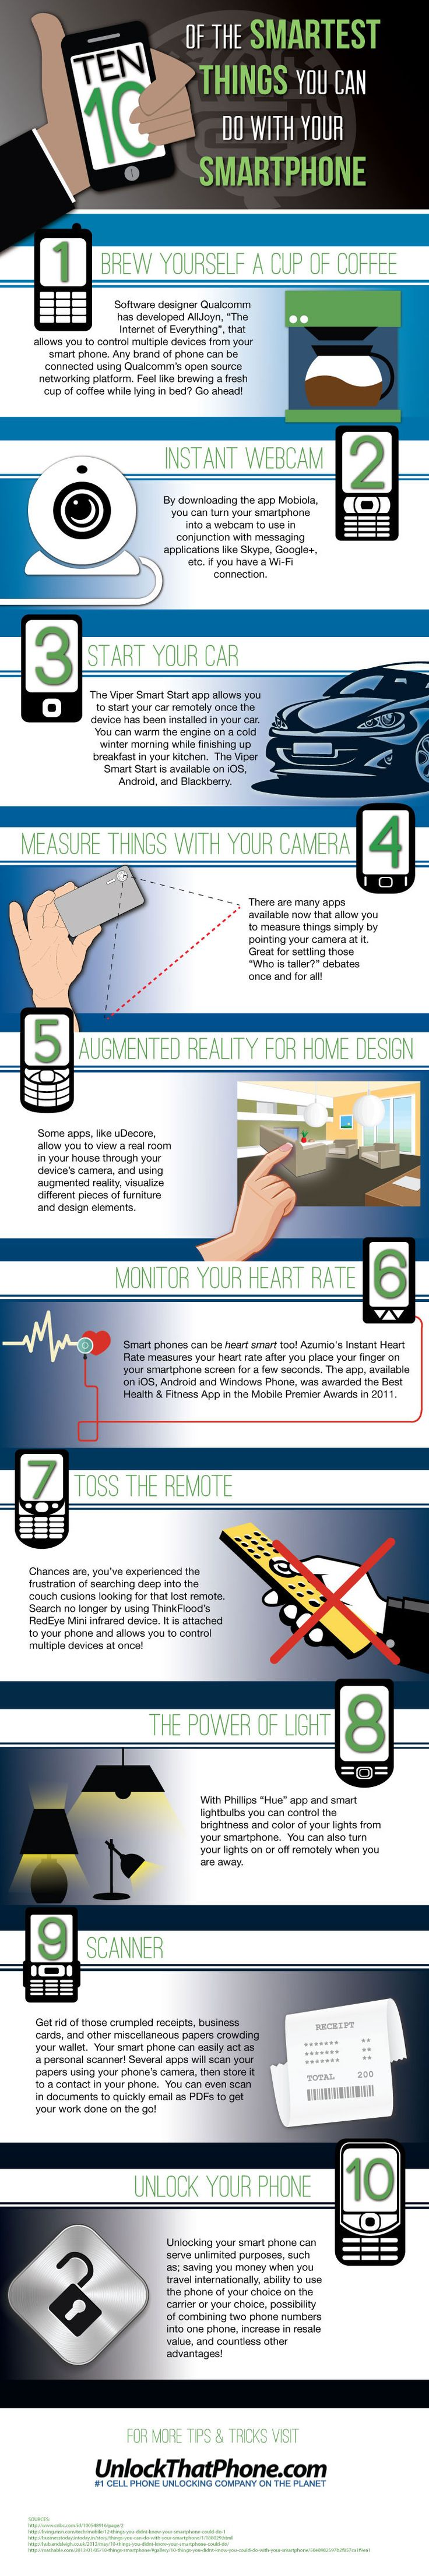 10 Really Smart Things You Can Do With Your Smartphone #infographic